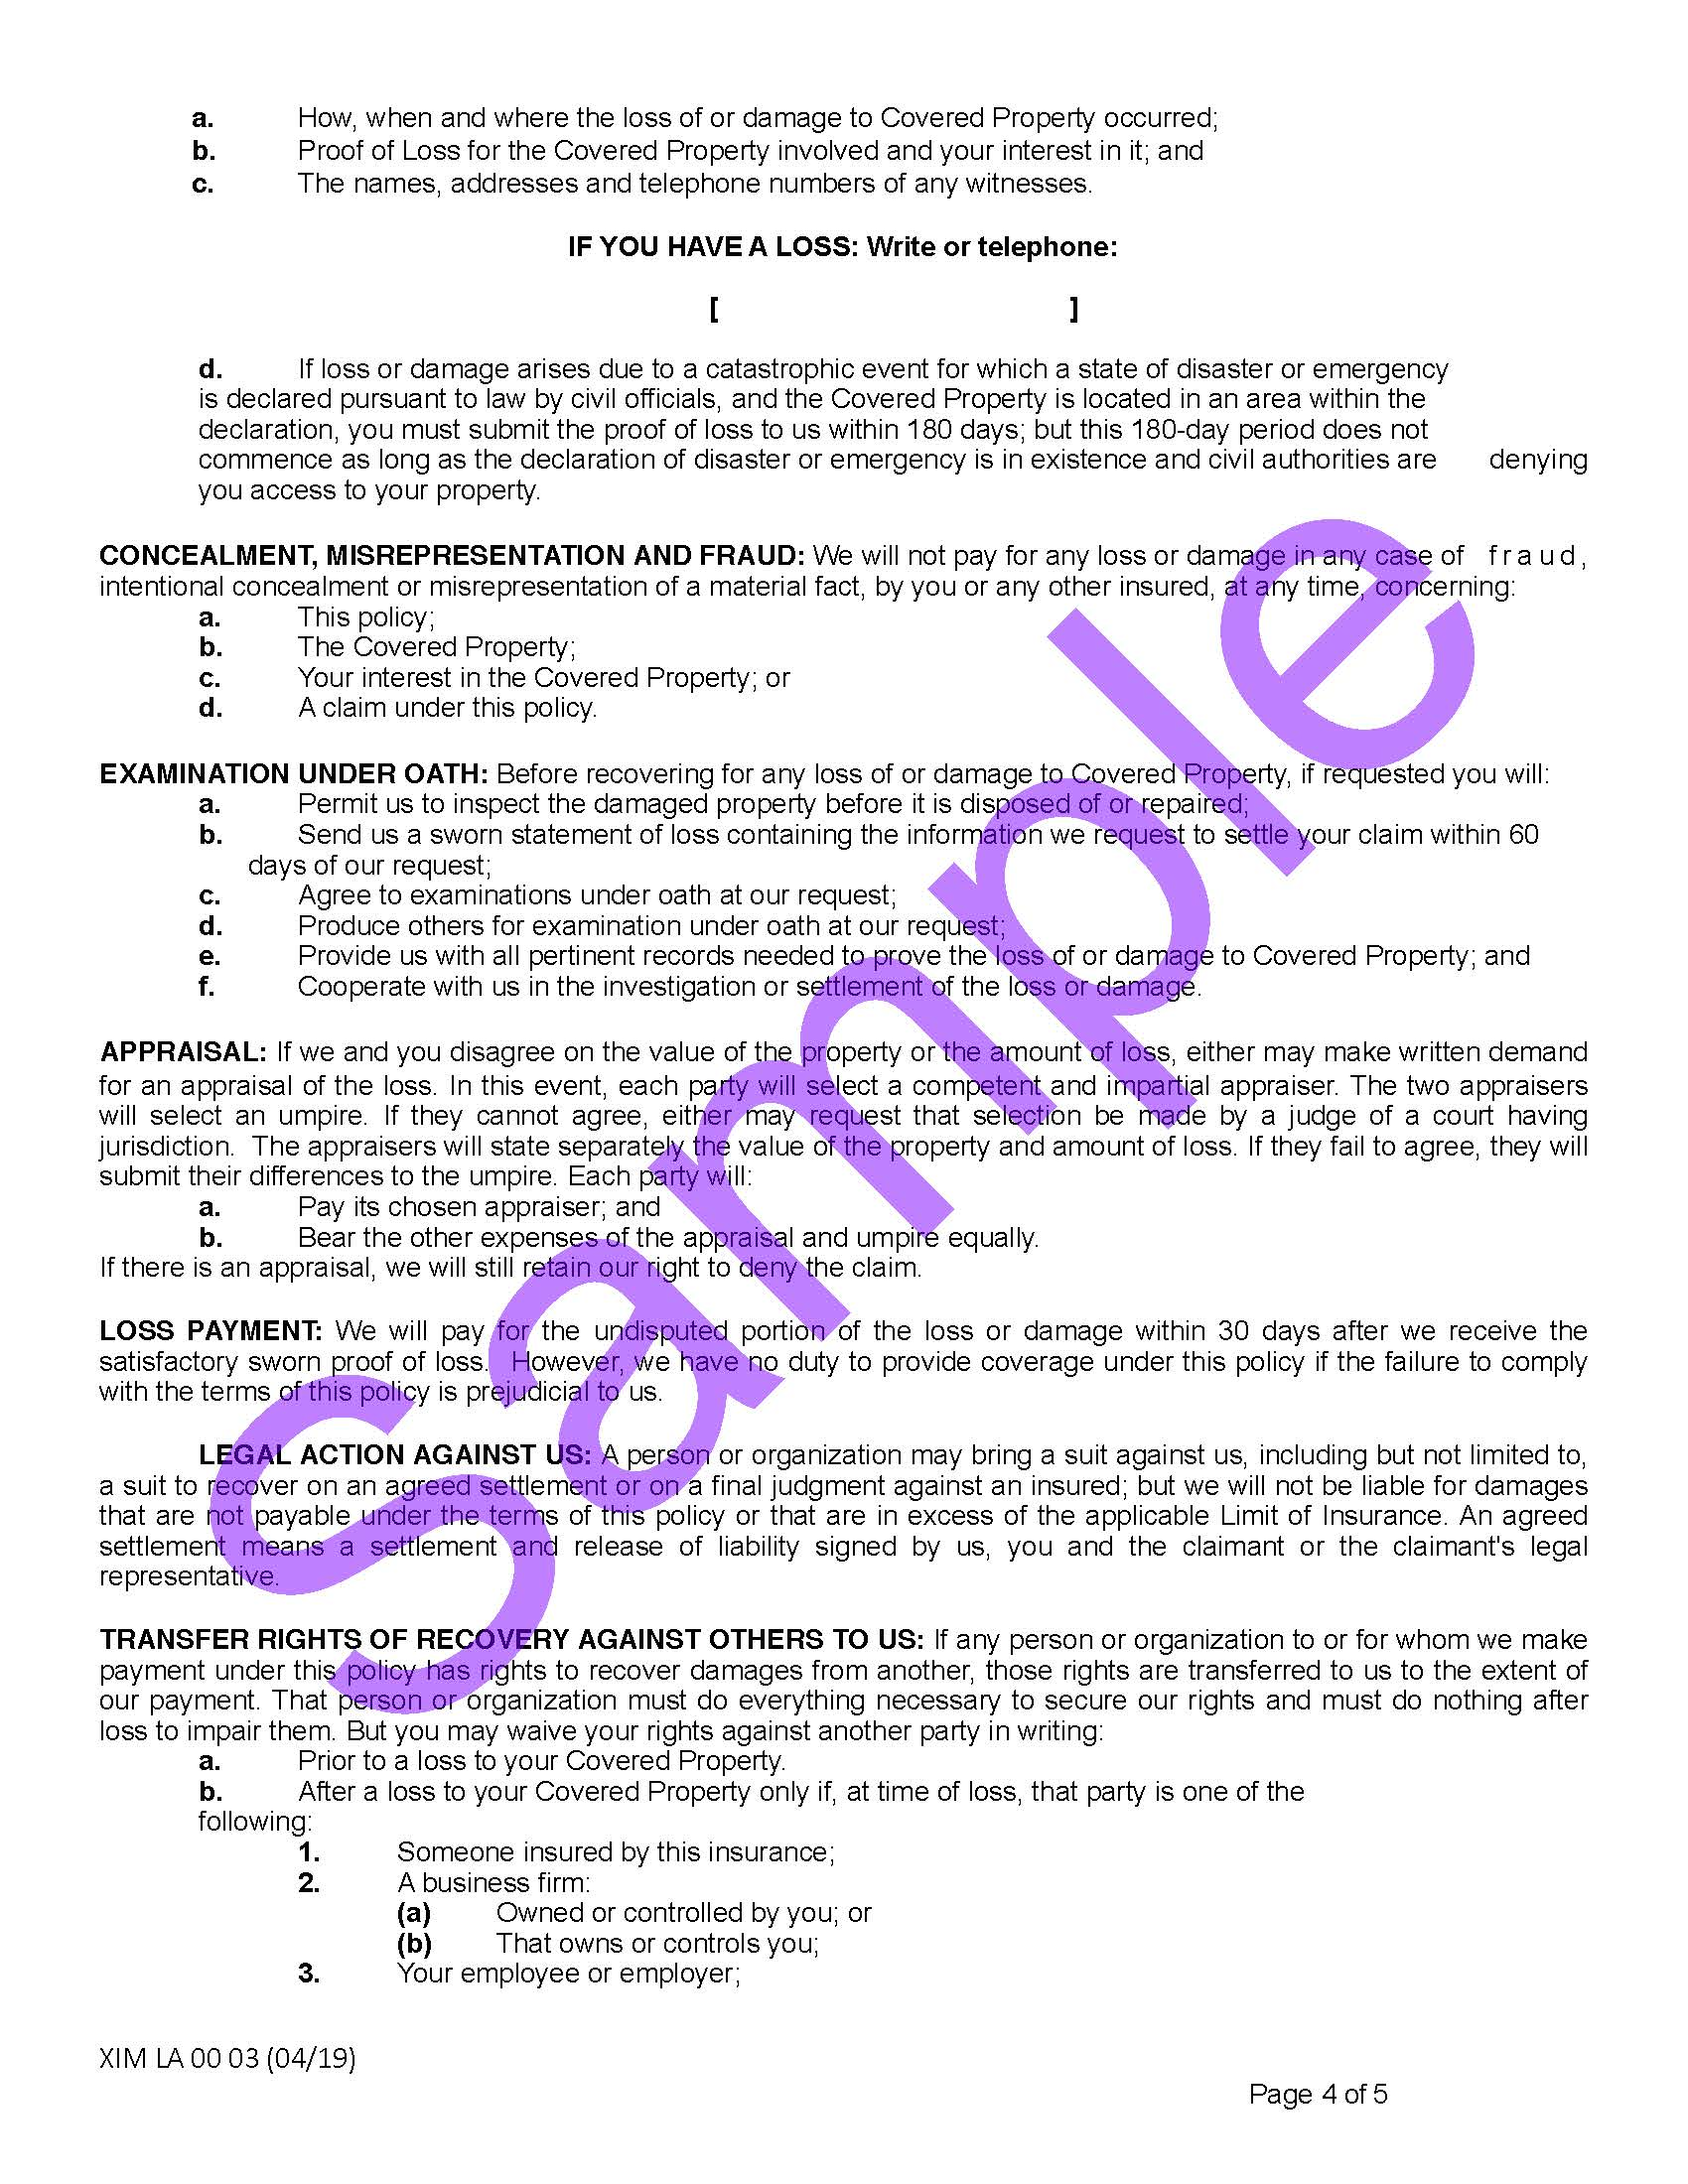 XIM LA 00 03 04 19 Louisiana Certificate of InsuranceSample_Page_4.jpg